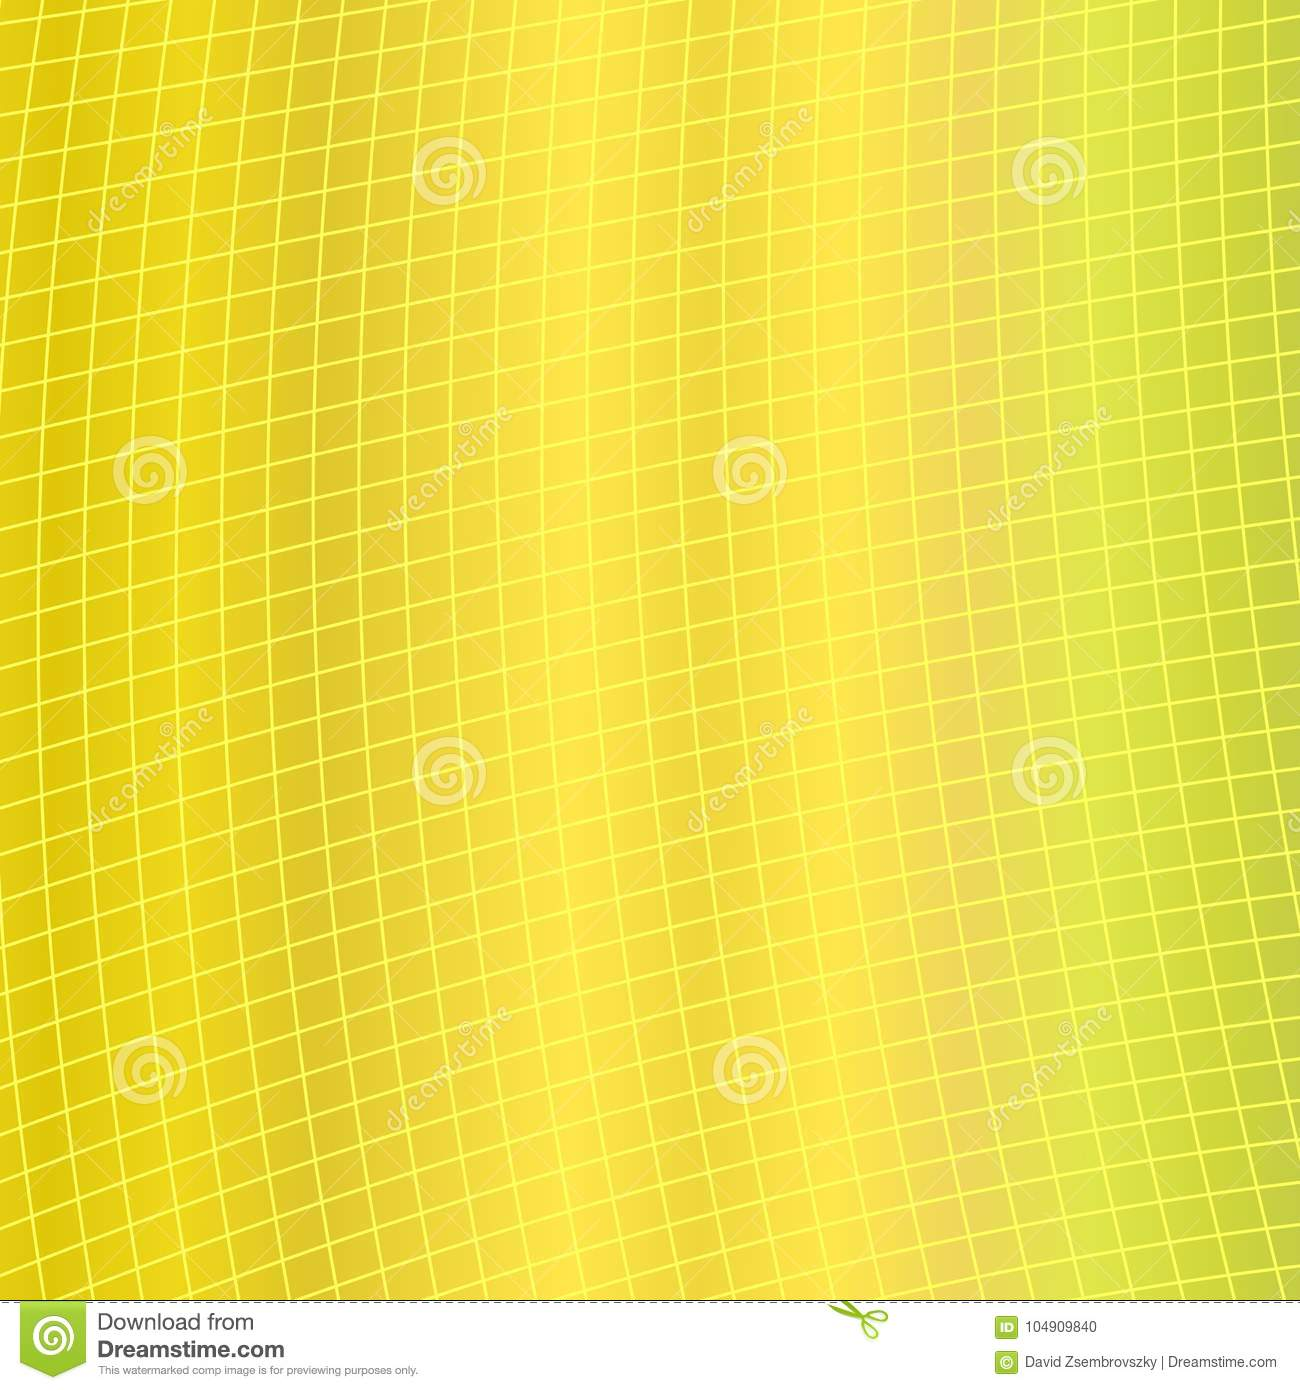 Abstract Modern Grid Background - Vector Graphic Design From Curved